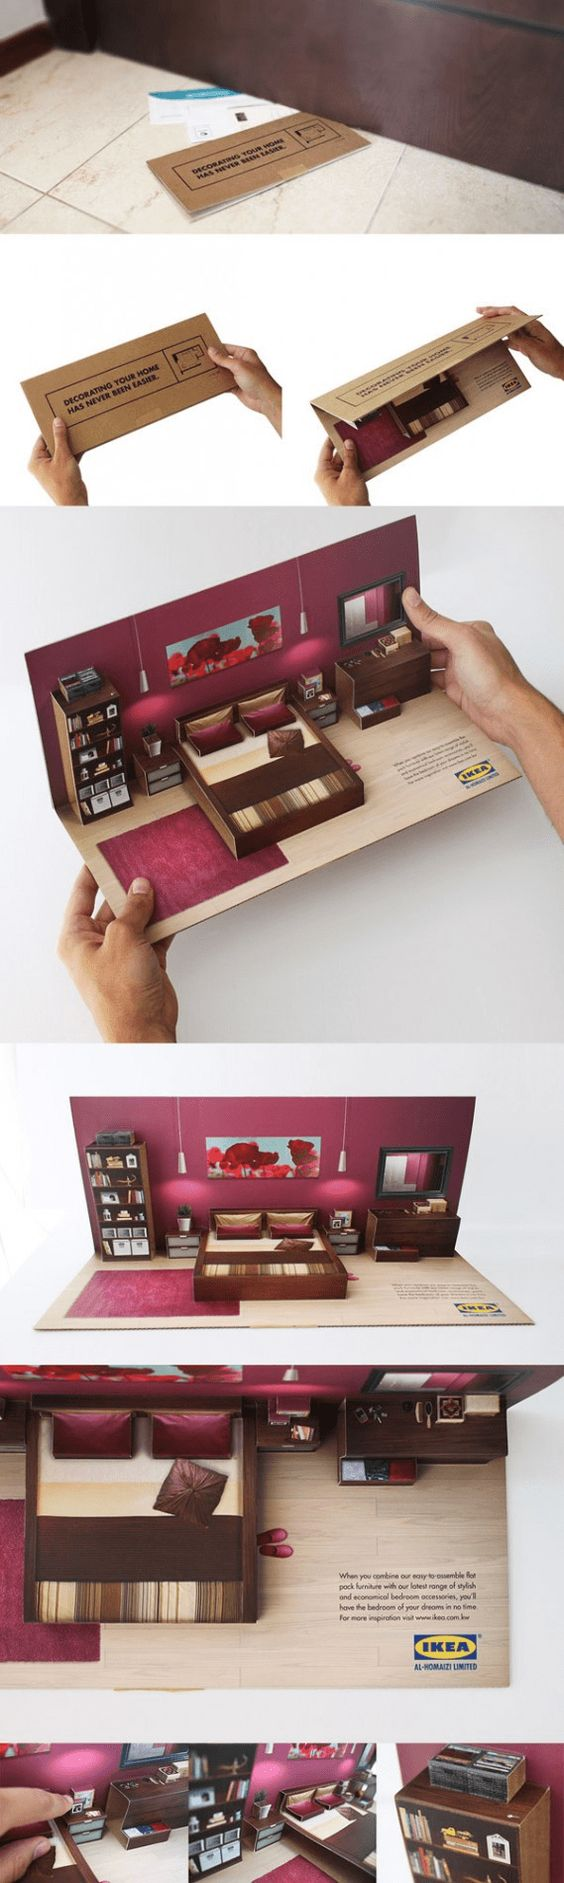 IKEA #Packaging #Design Inspirations, who wouldn't want to receive this #packaging promo? PD